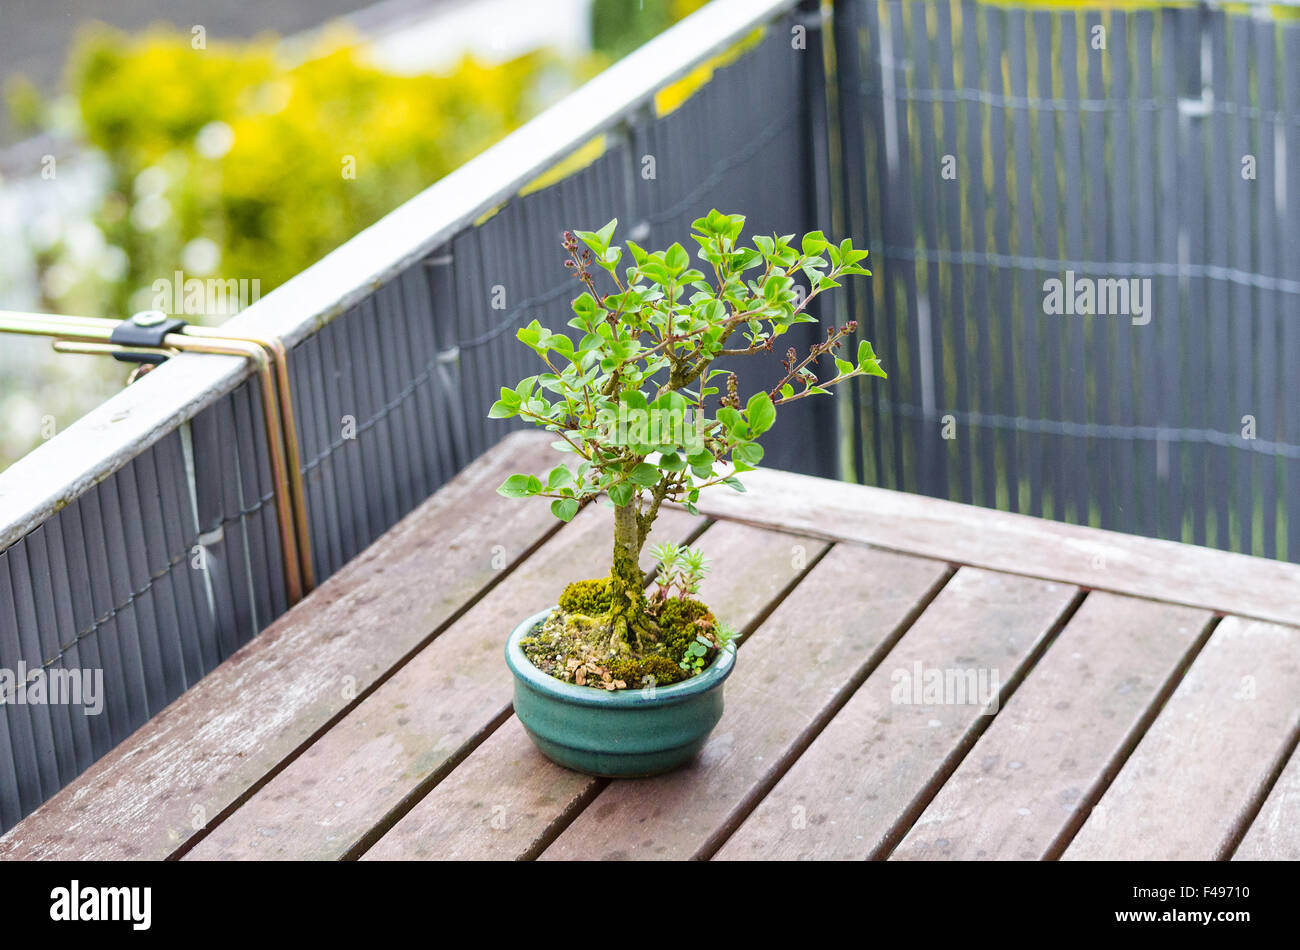 Bonsai Pot Wiring Tree Stock Photos Video Image